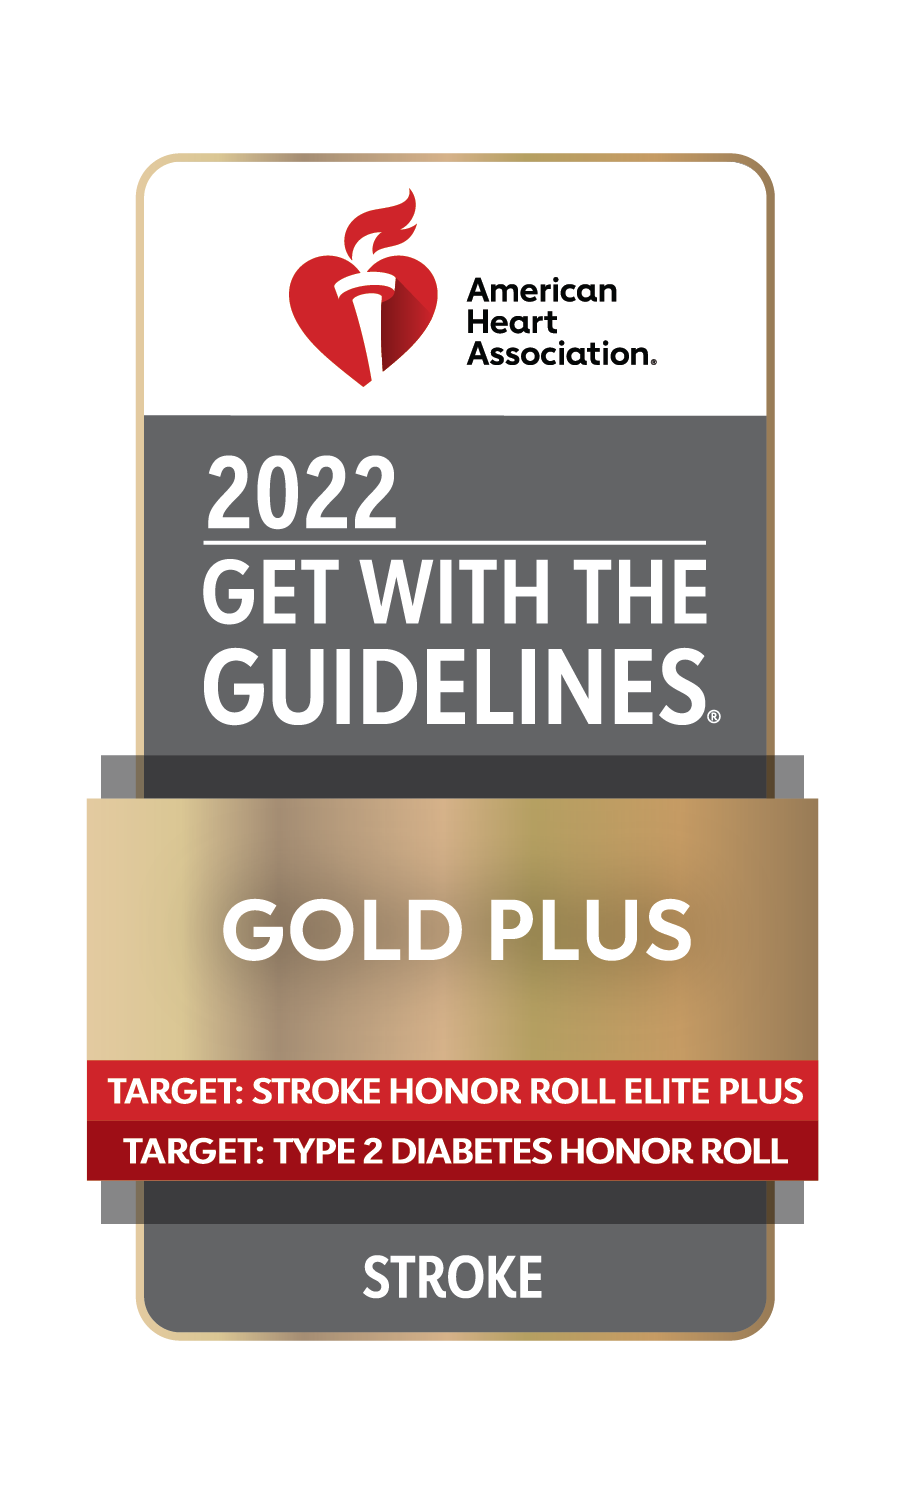 2018 Gold Plus - Get With the Guidelines